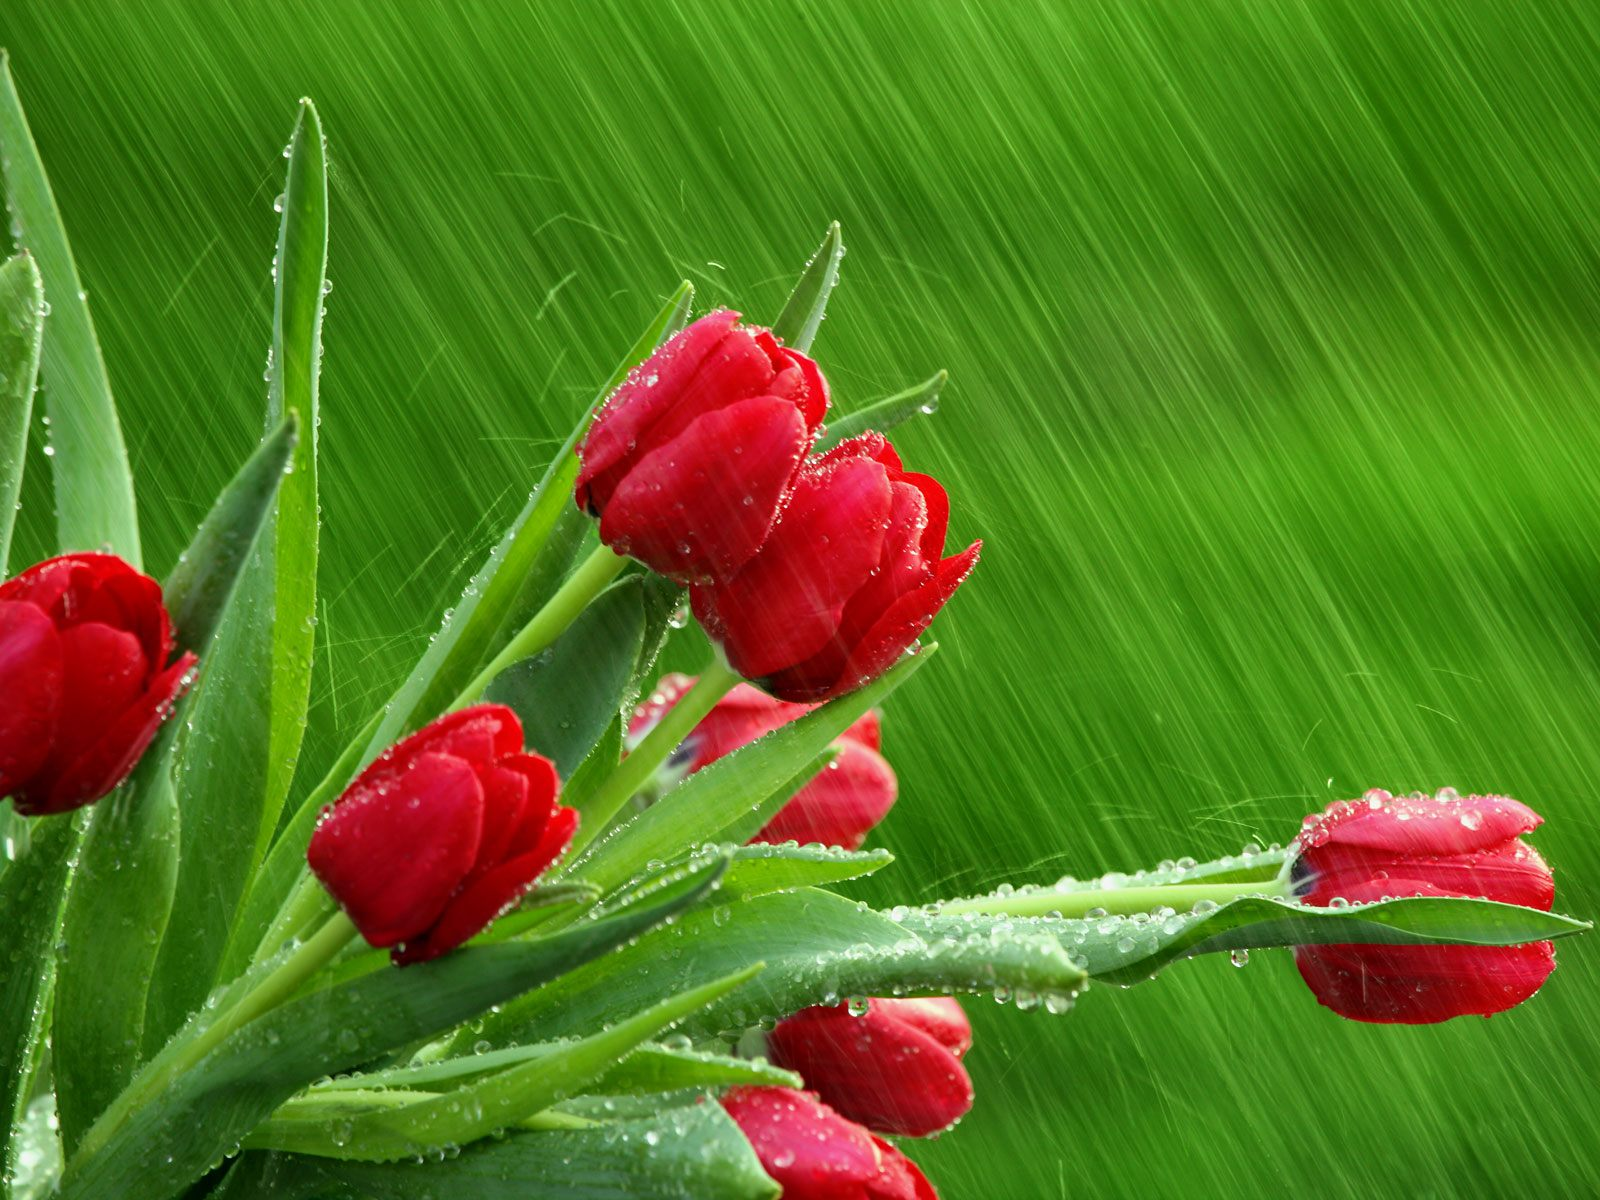 http://4.bp.blogspot.com/-ZJED-SCTLvs/TePrJYJLetI/AAAAAAAAAHQ/dj-gSkTqyaw/s1600/Red%20Tulips%20in%20the%20Rain%20HD%20flowers%20Wallpaper.jpg